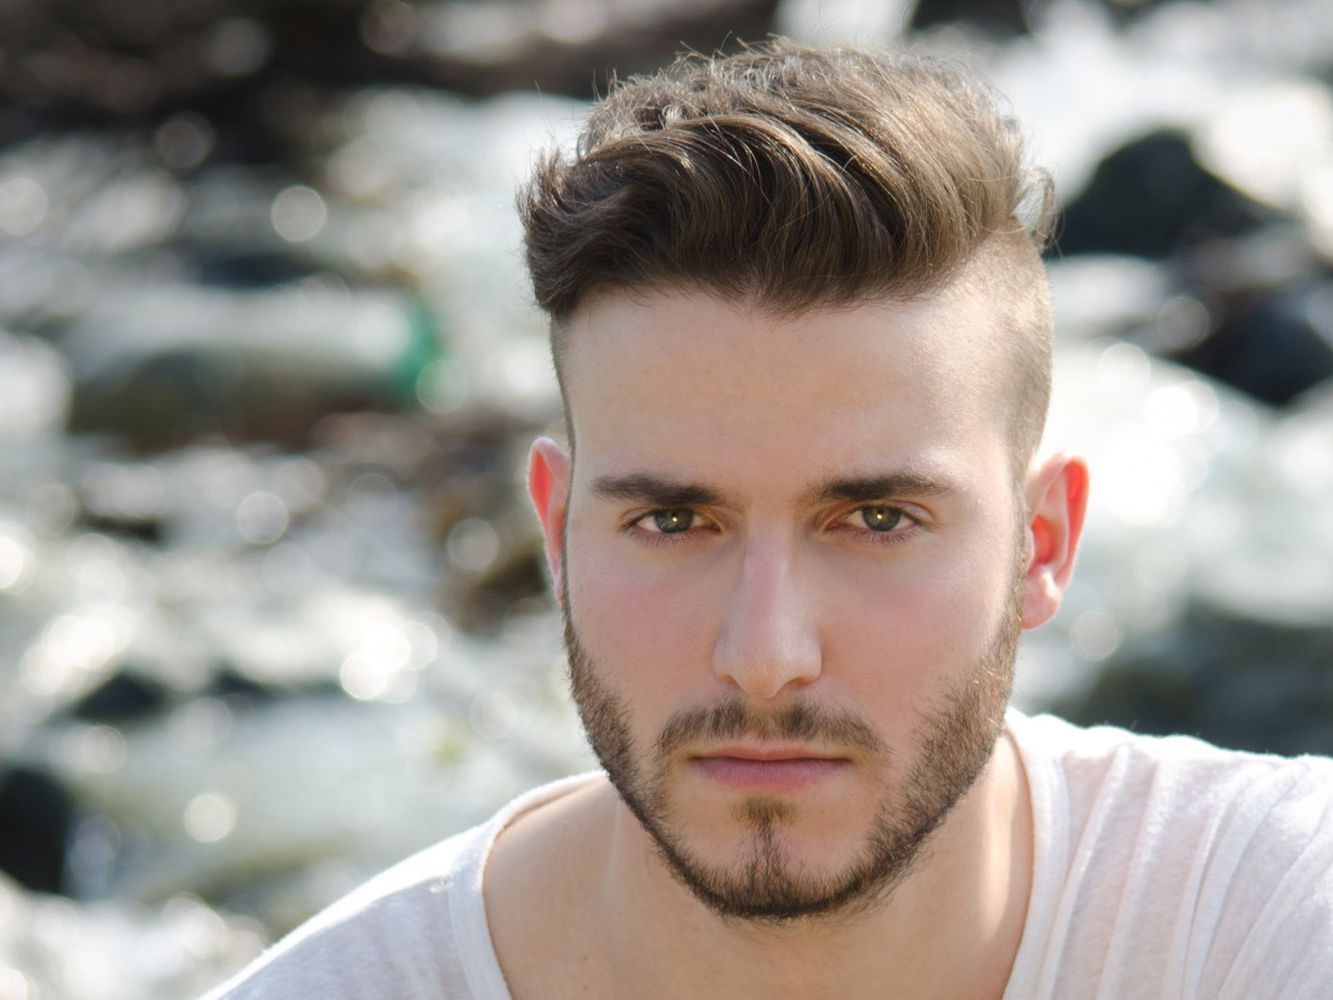 Men\'s Hair Trend: Short Sides, Disconnected Top